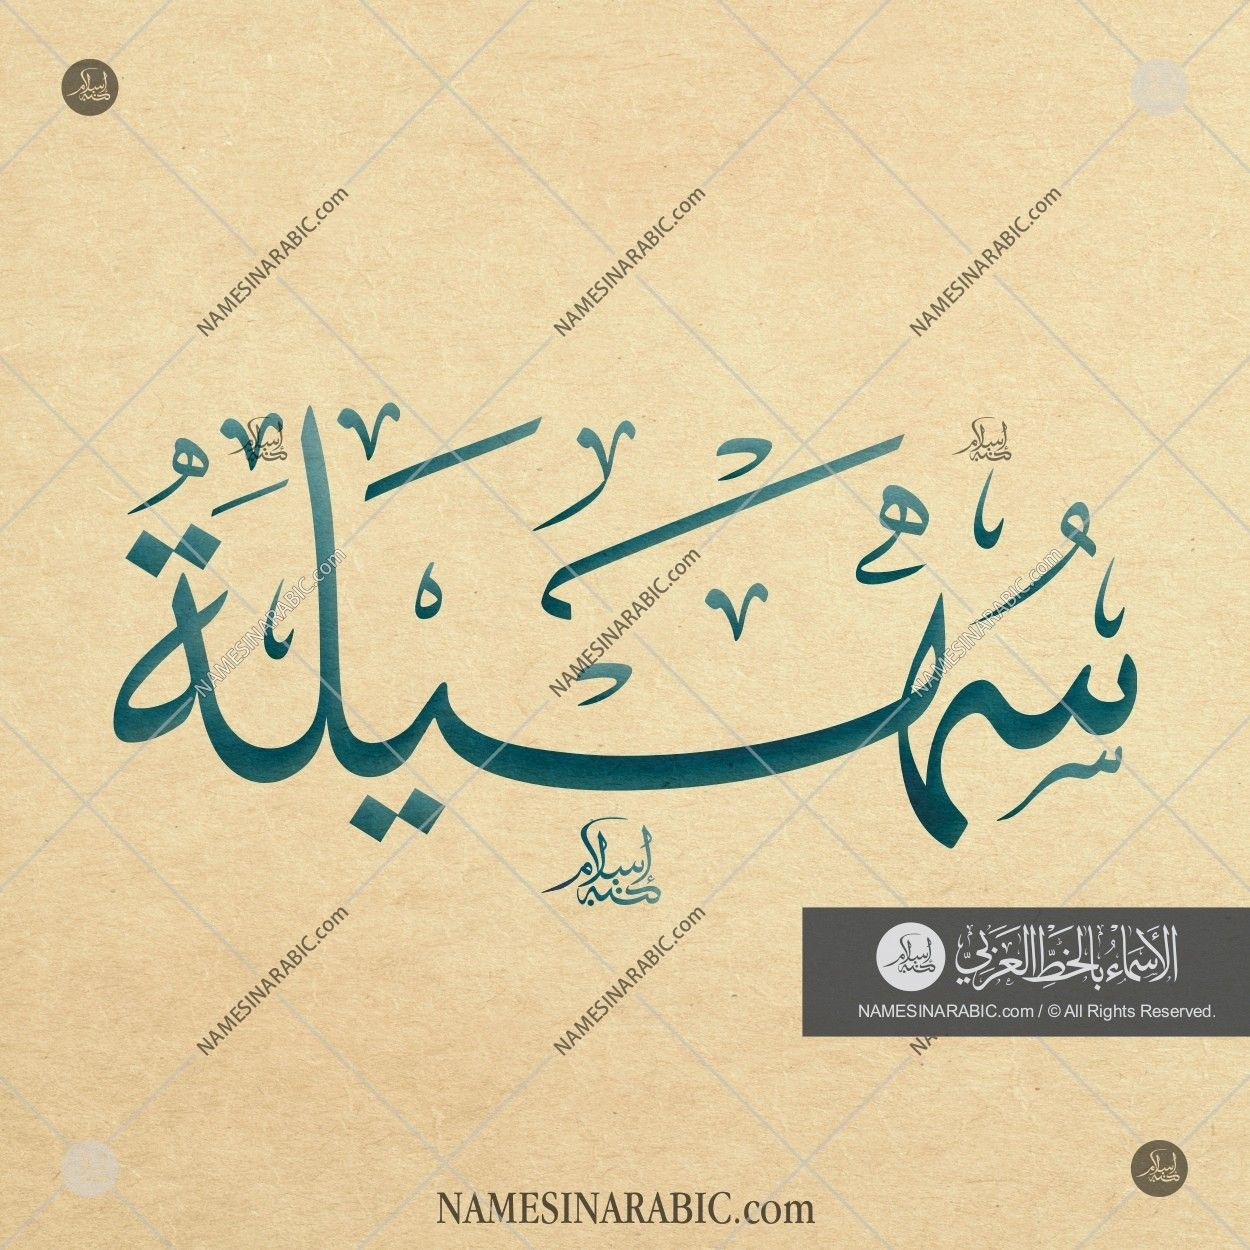 Suhailah سهيلة Names In Arabic Calligraphy Name 3151 Calligraphy Name Calligraphy Arabic Calligraphy